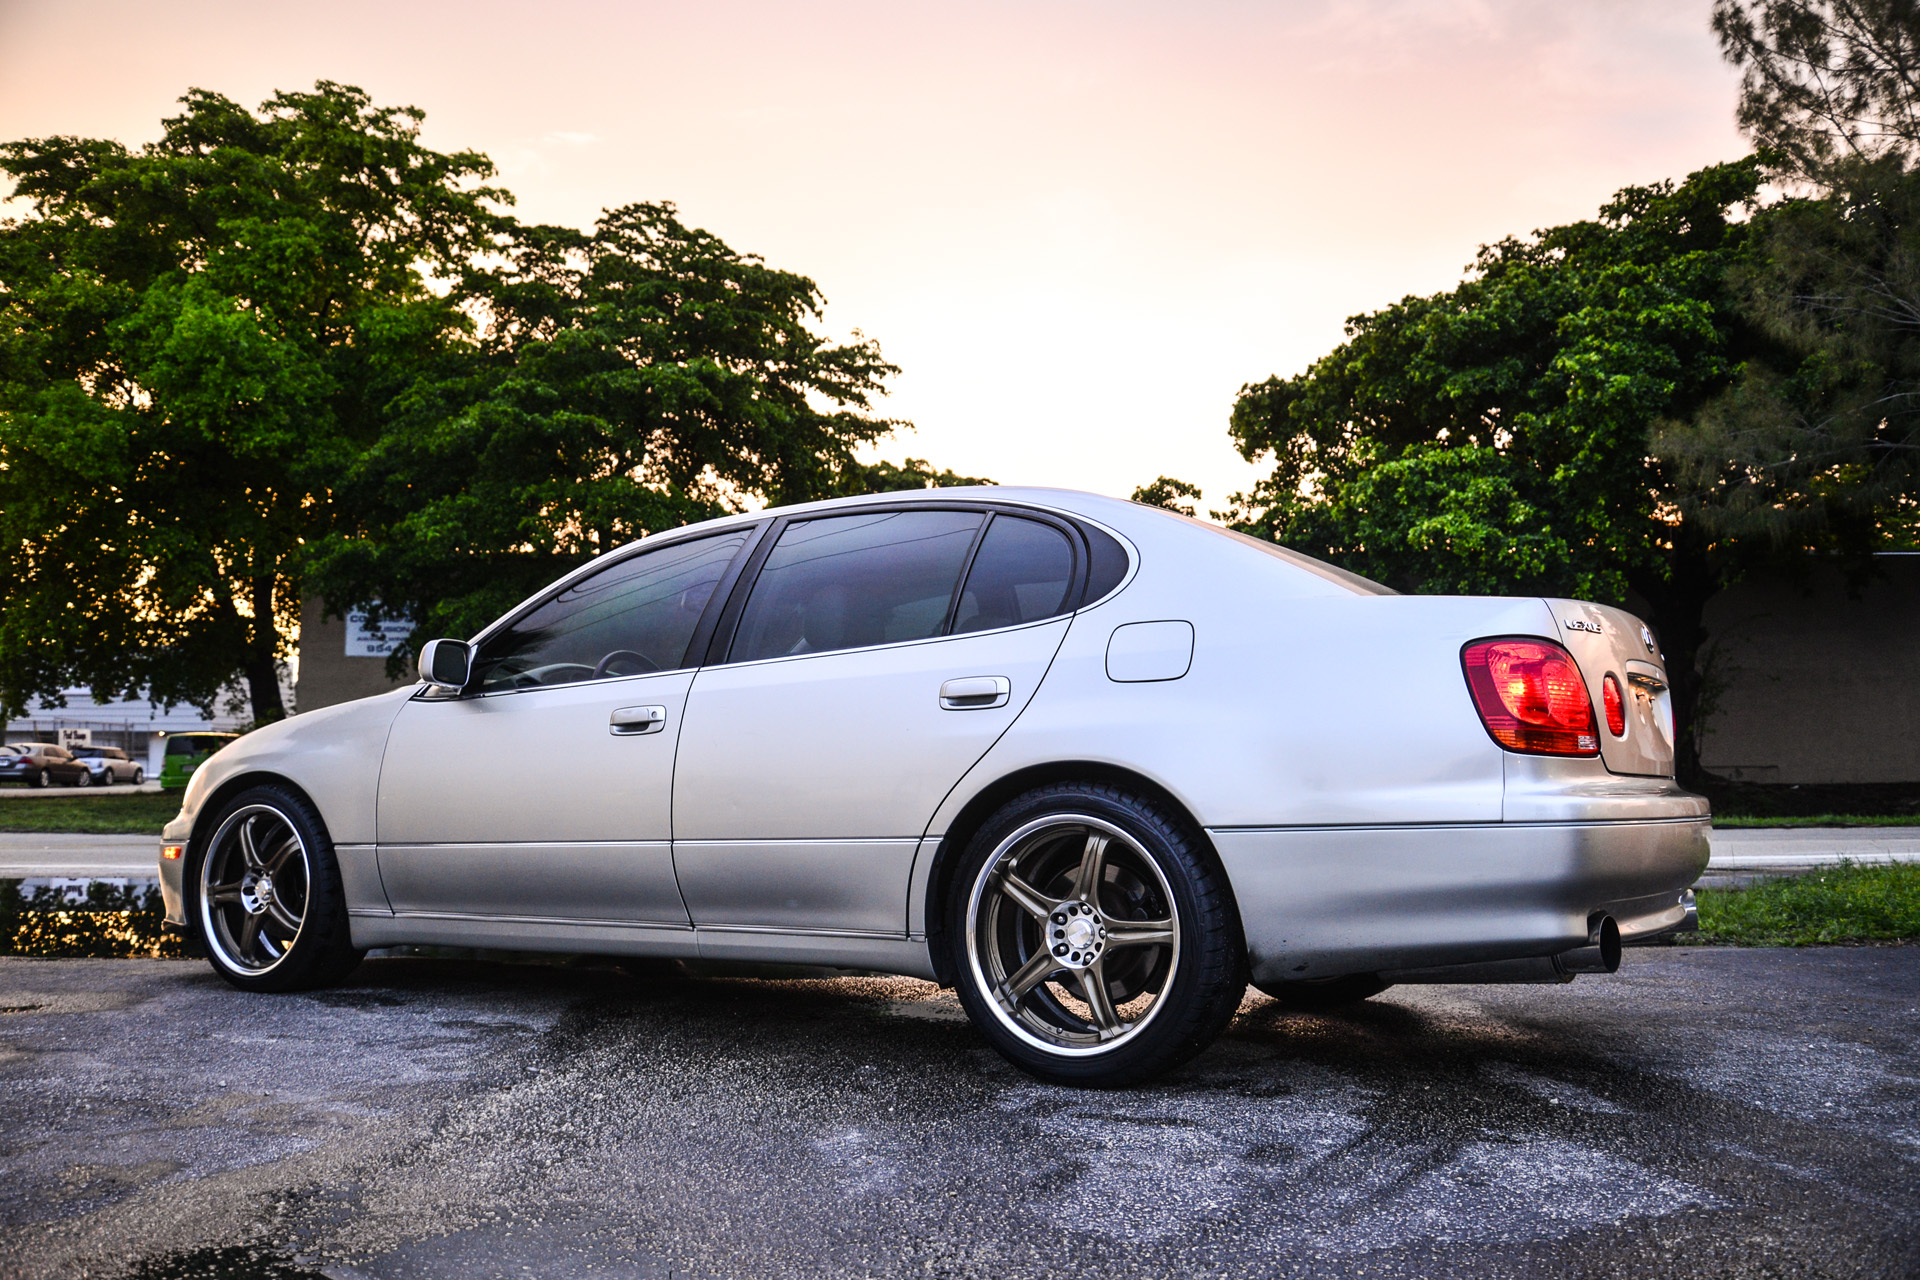 Reflecting on another Aristo Twin Turbo swapped GS300